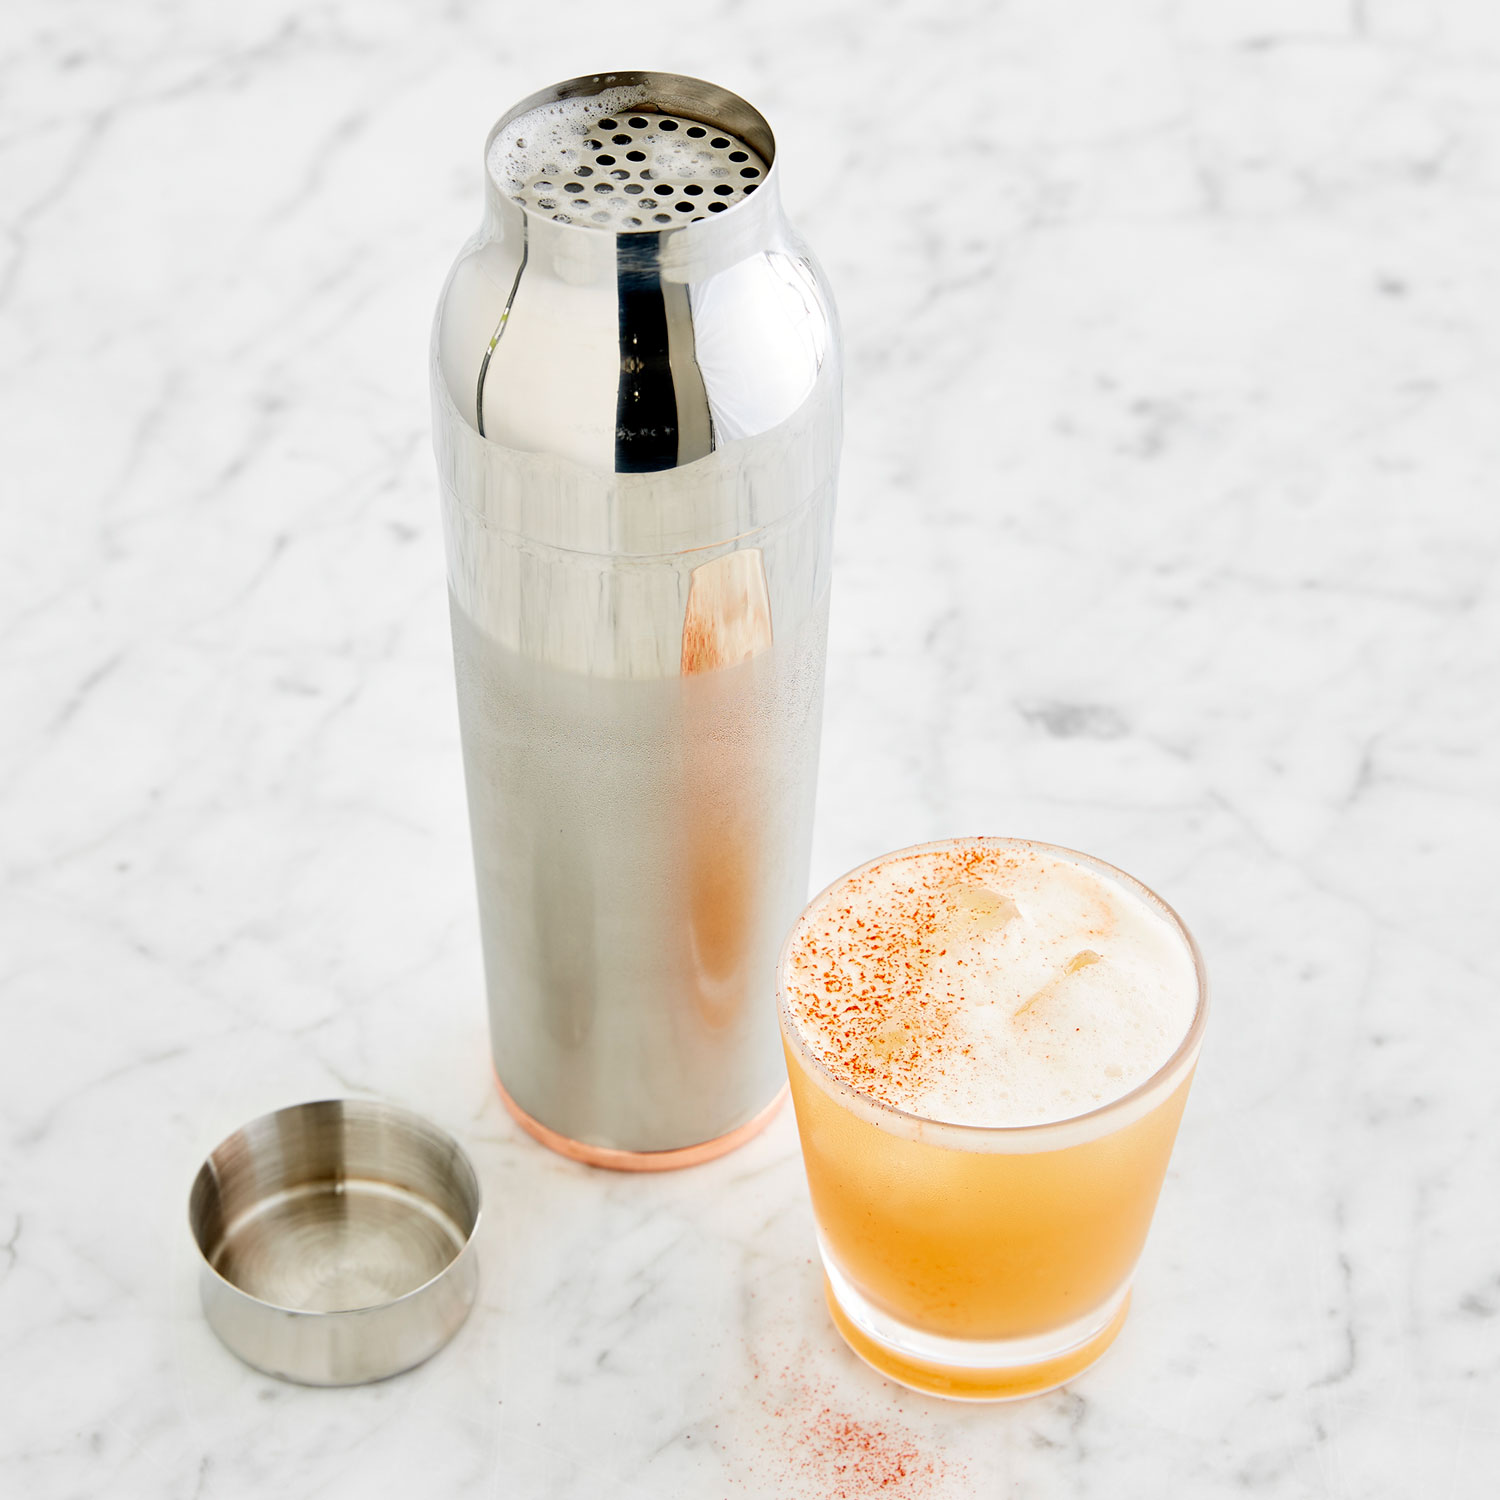 wedding registry product ideas single wall cocktail shaker williams sonoma